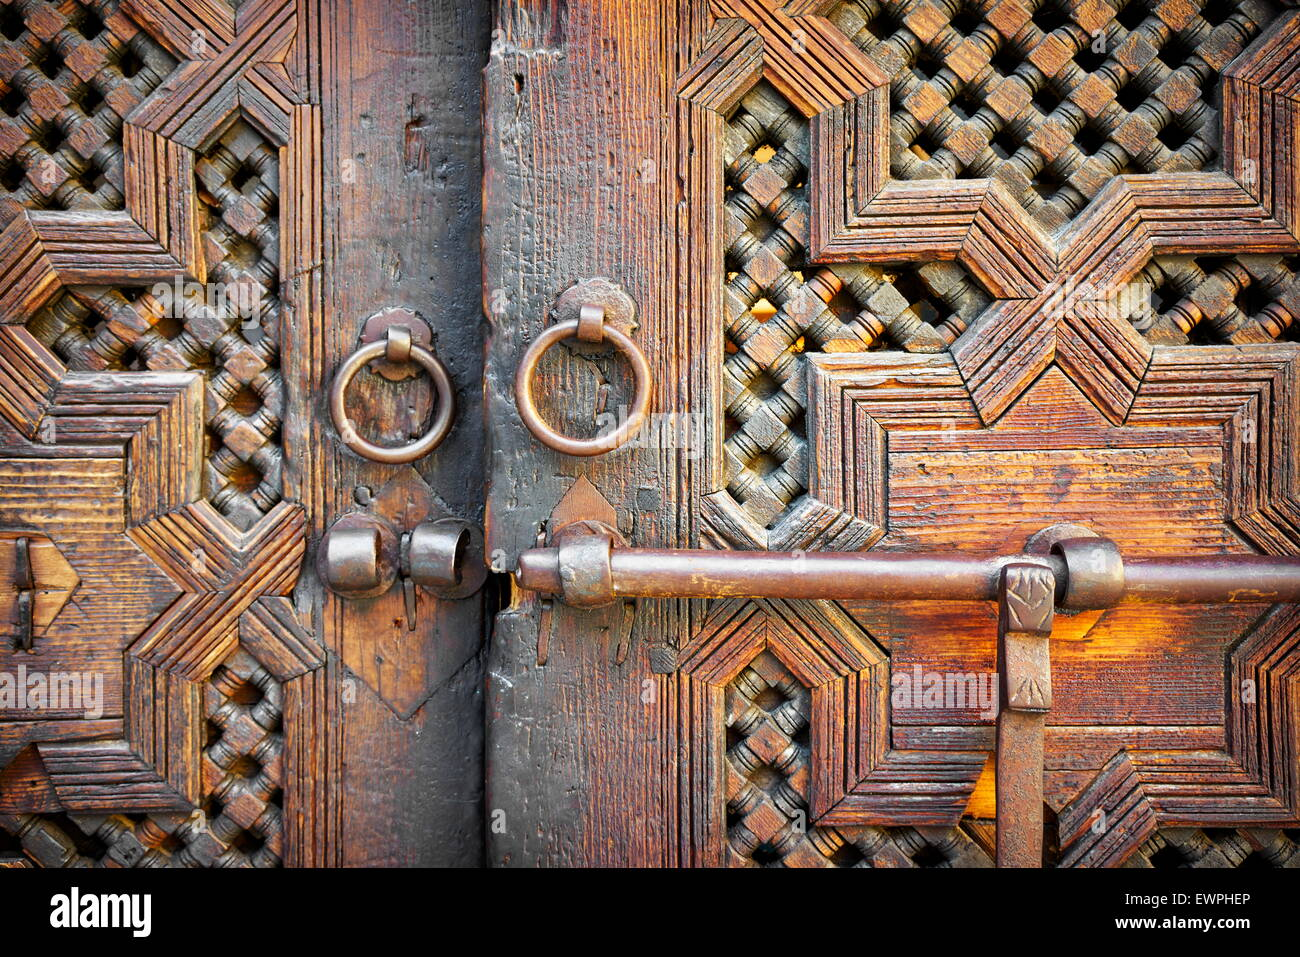 Fez. Historic wooden door in old house, Medina. Detail of the decorative ornament. Morocco, Africa - Stock Image